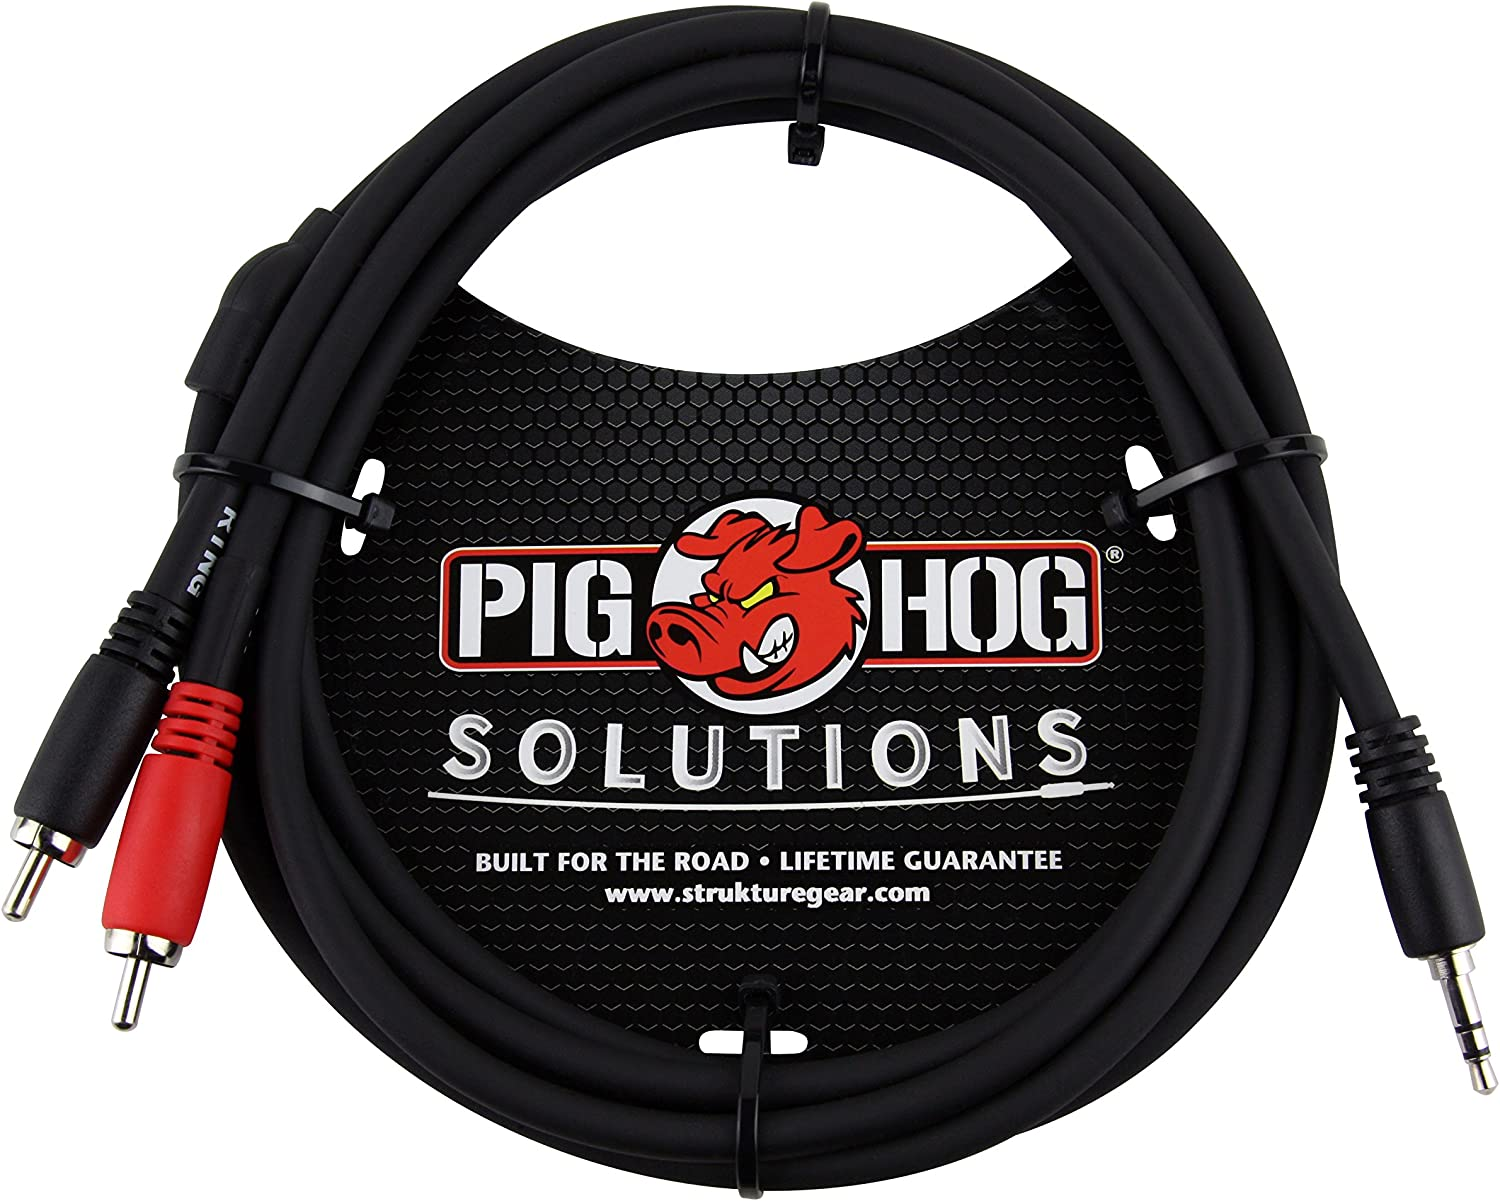 6 Feet Male Stereo Breakout Cable Pig Hog PB-S3R06 3.5 mm to Dual RCA